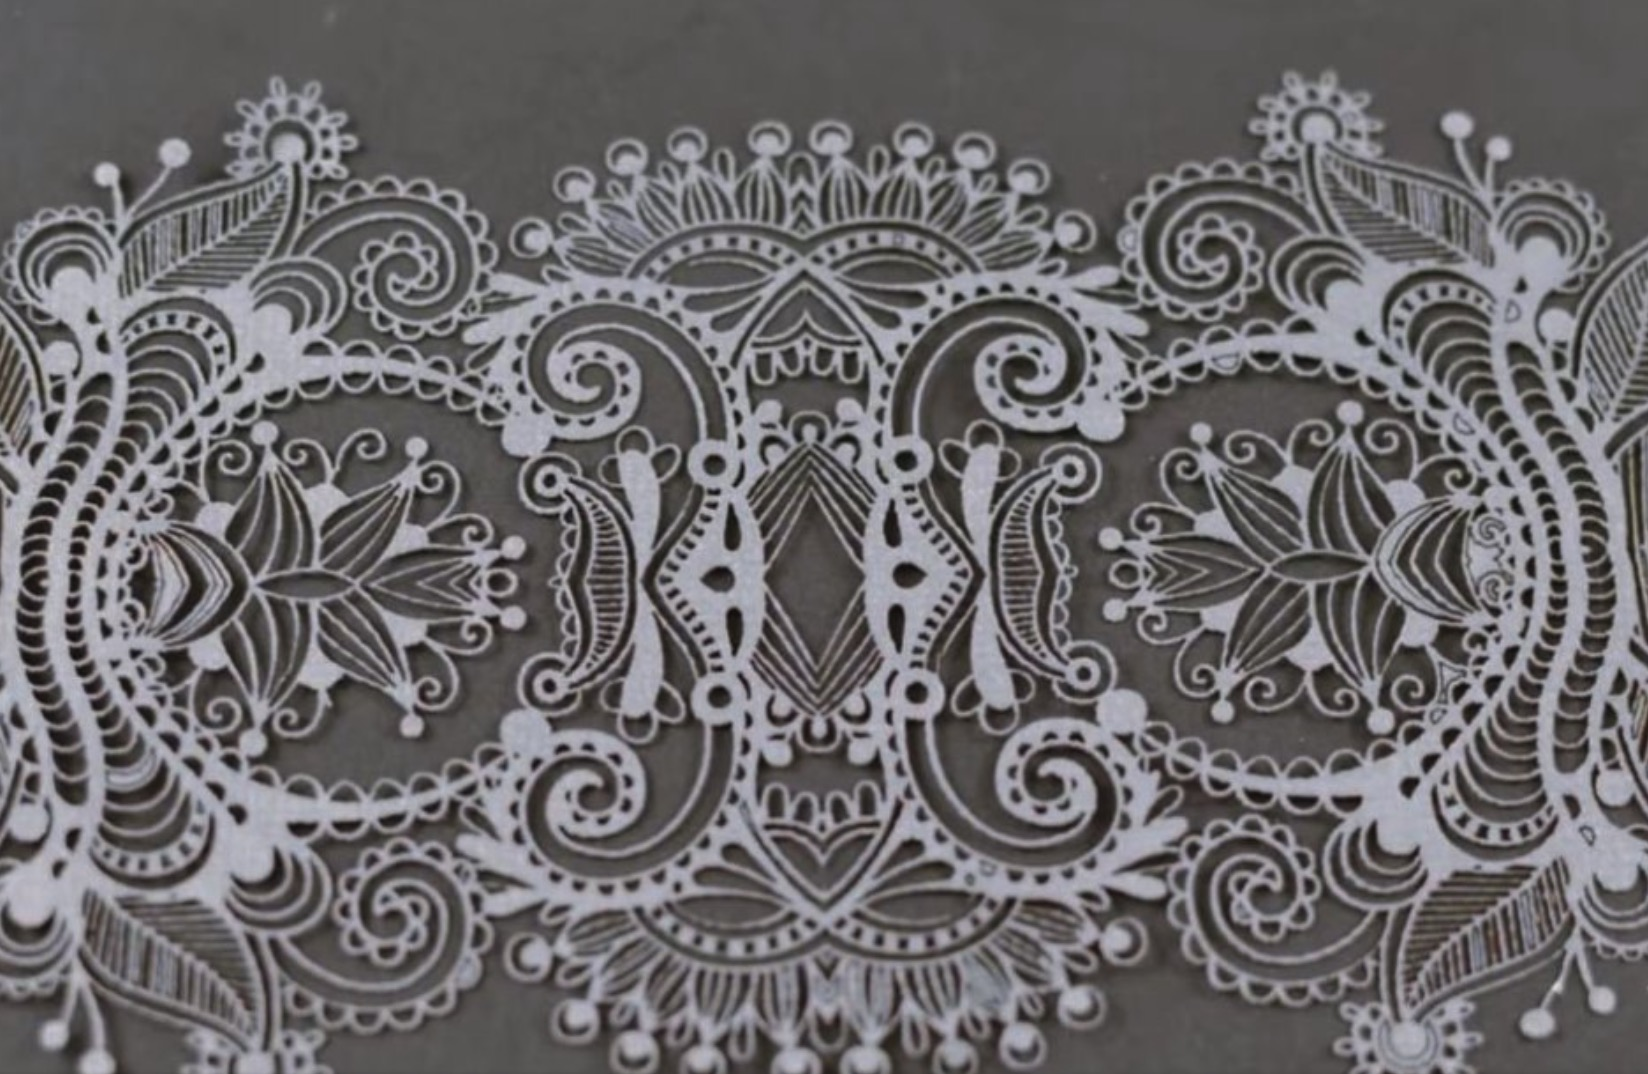 watch-lasers-cut-intricate-lace-designs-paper